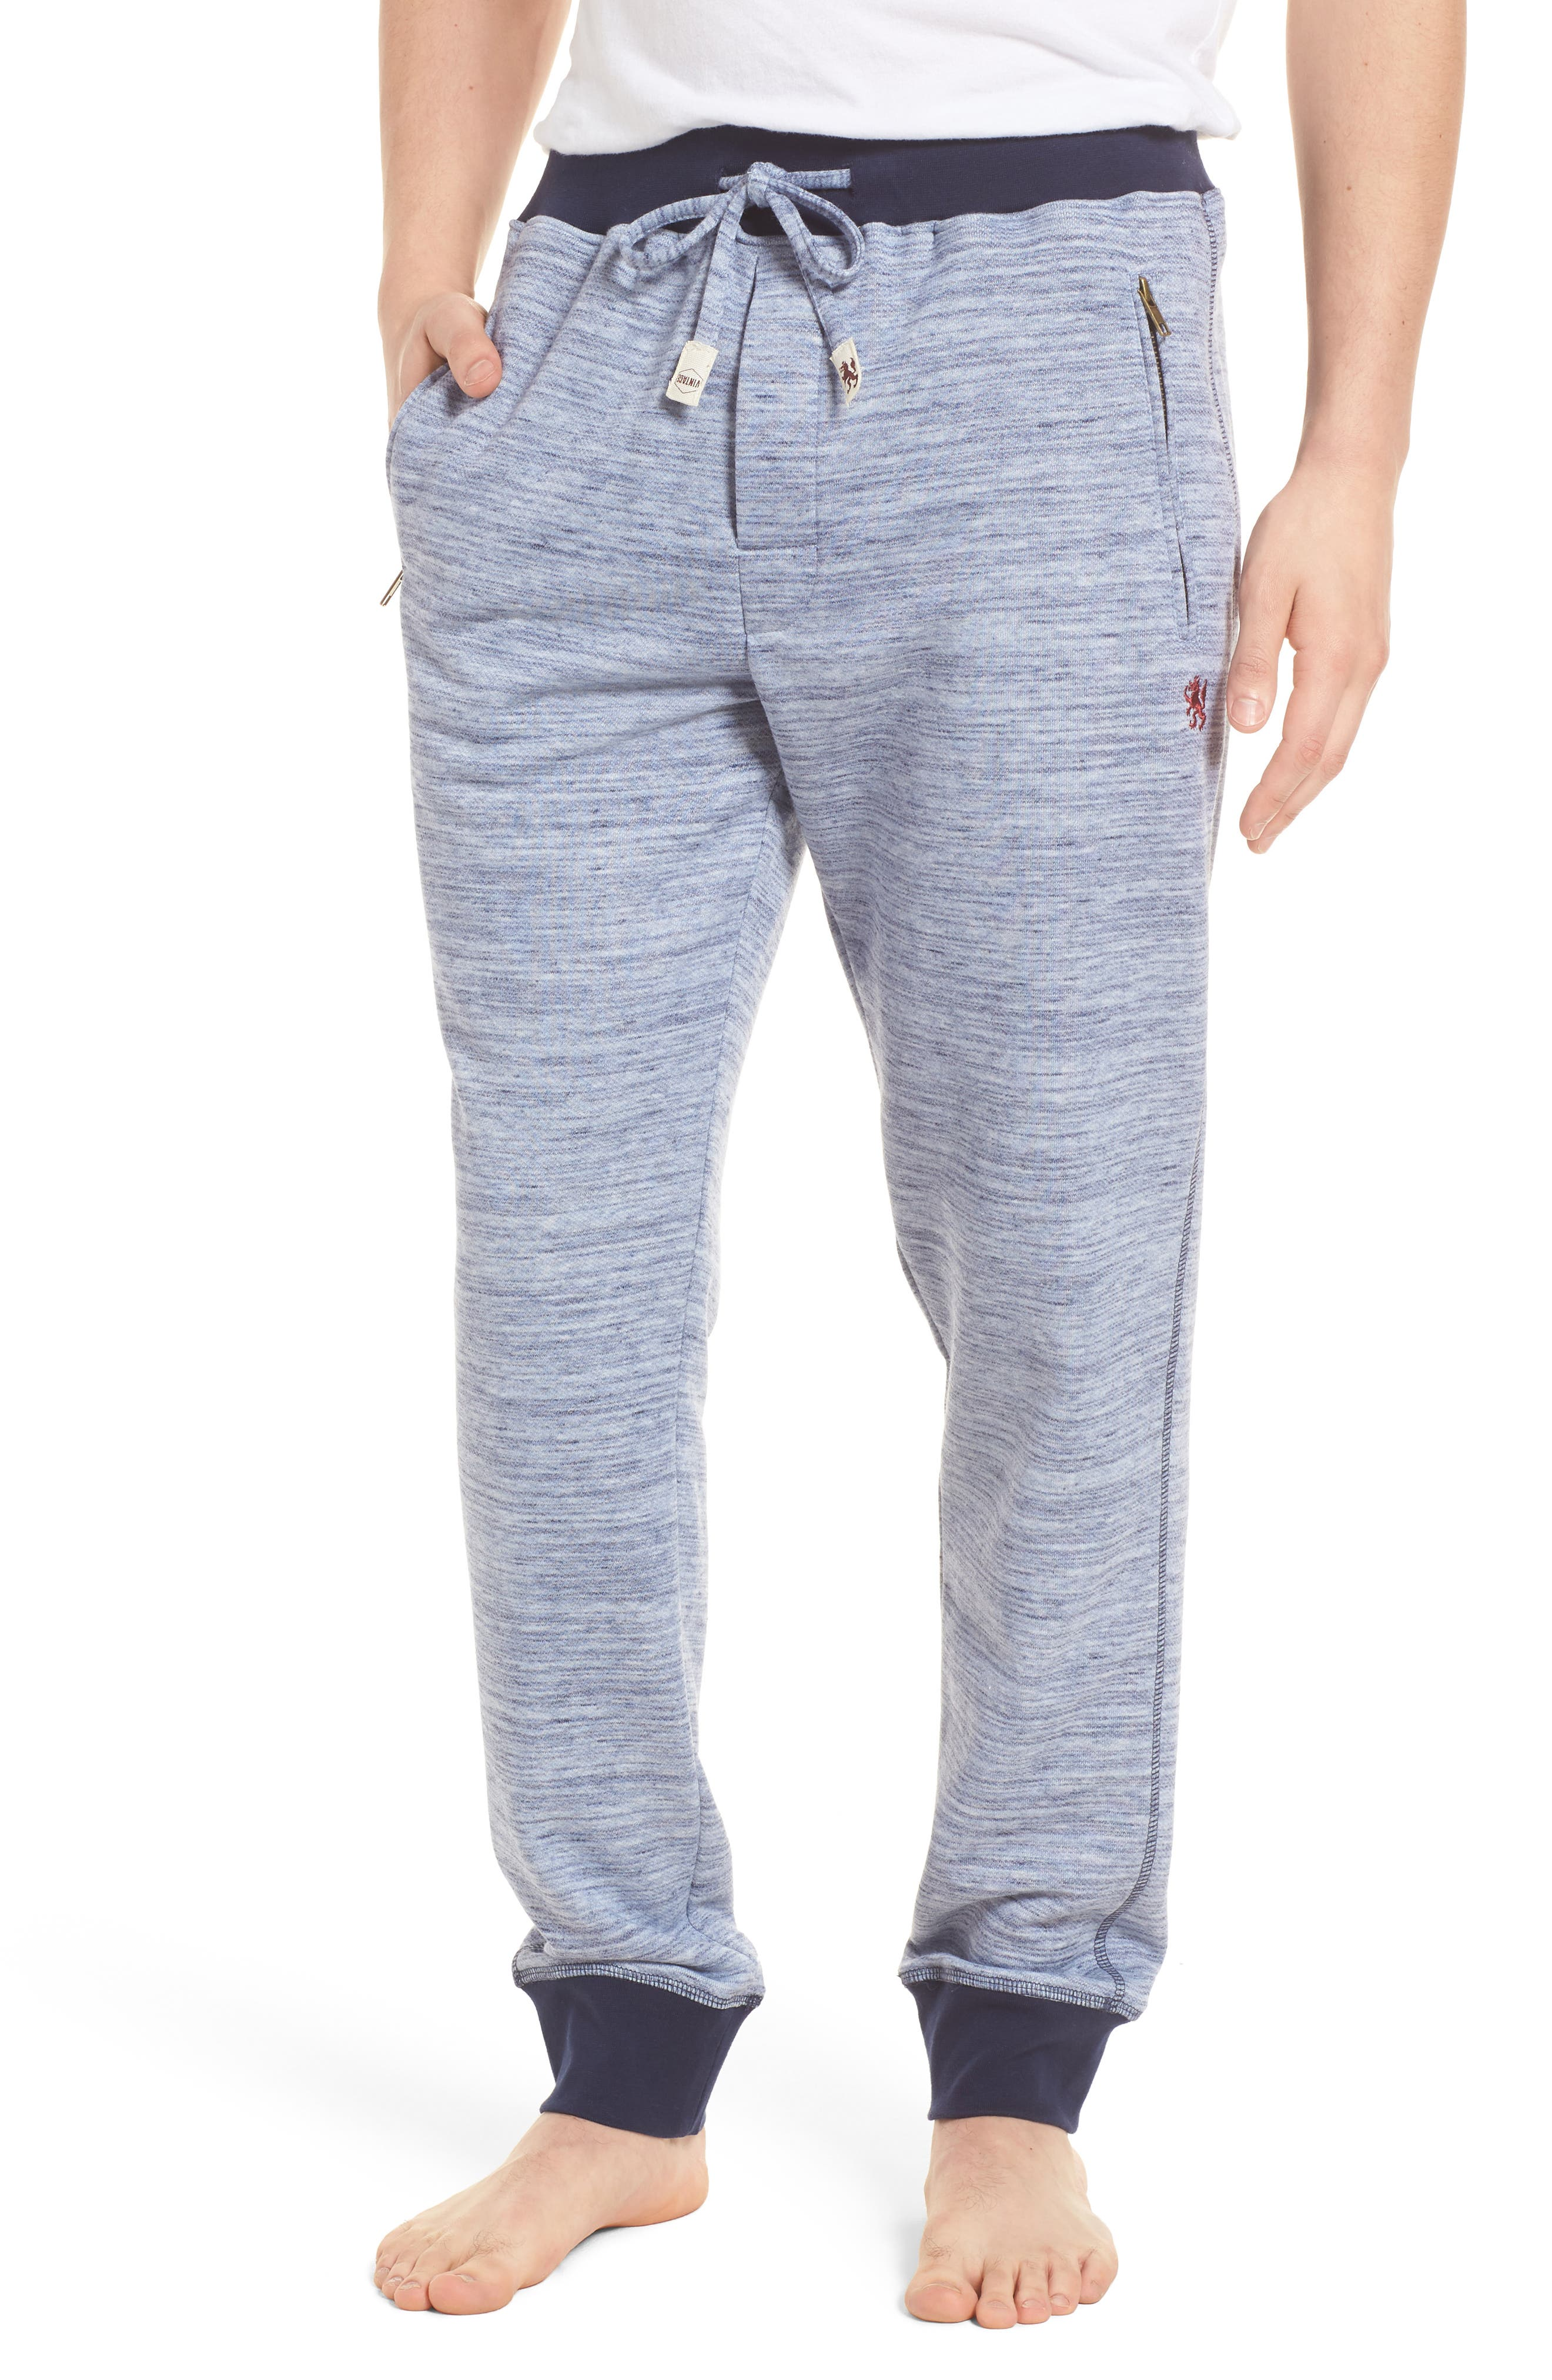 Swept In Waves Lounge Pants,                             Main thumbnail 1, color,                             Alfresco French Terry